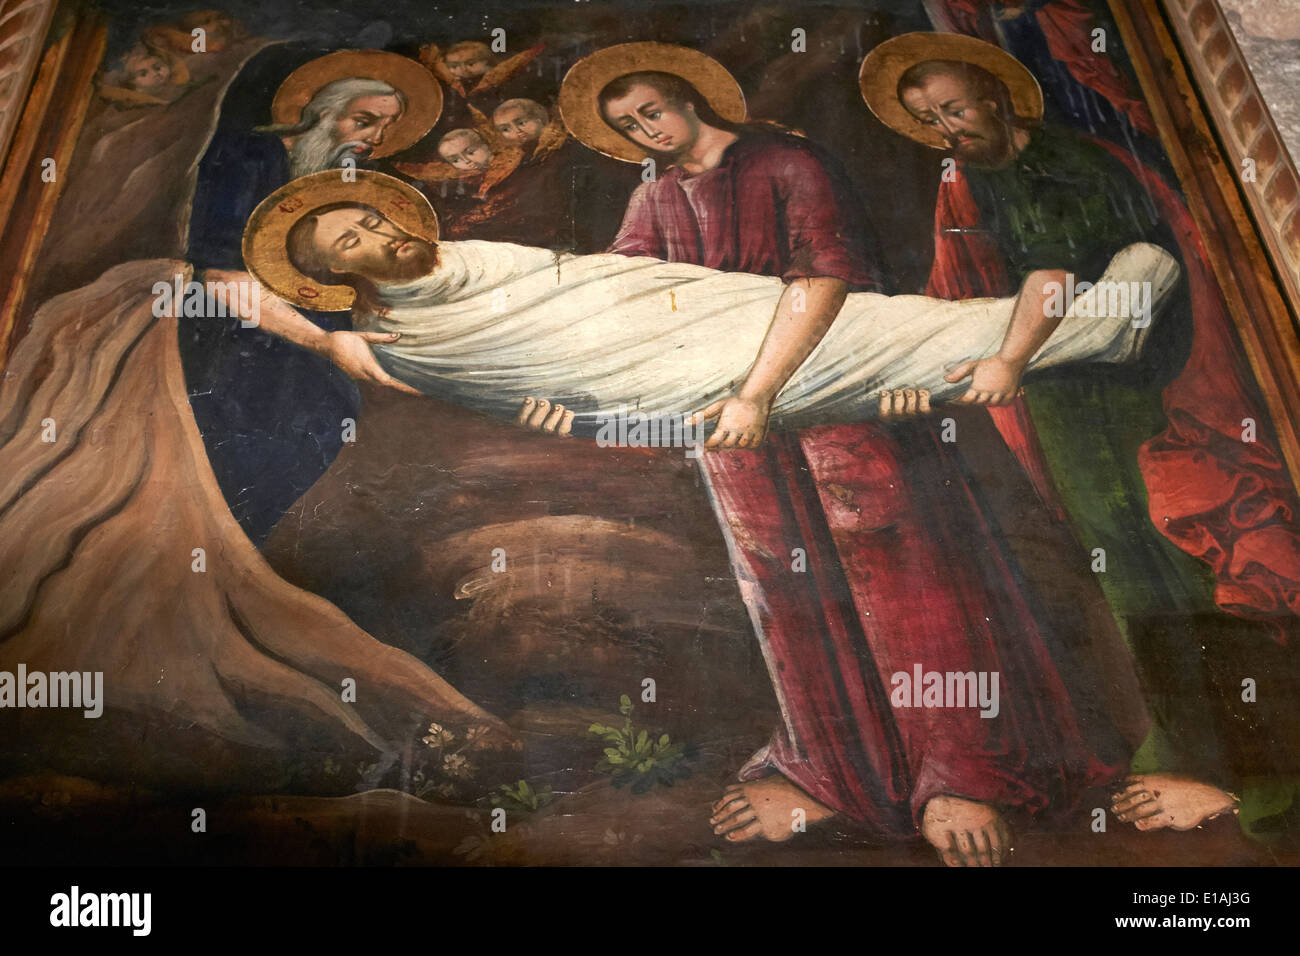 Greek icon of Christ being laid in the tomb dated 1859, Church of the Holy Sepulchre, Jerusalem, Israel - Stock Image